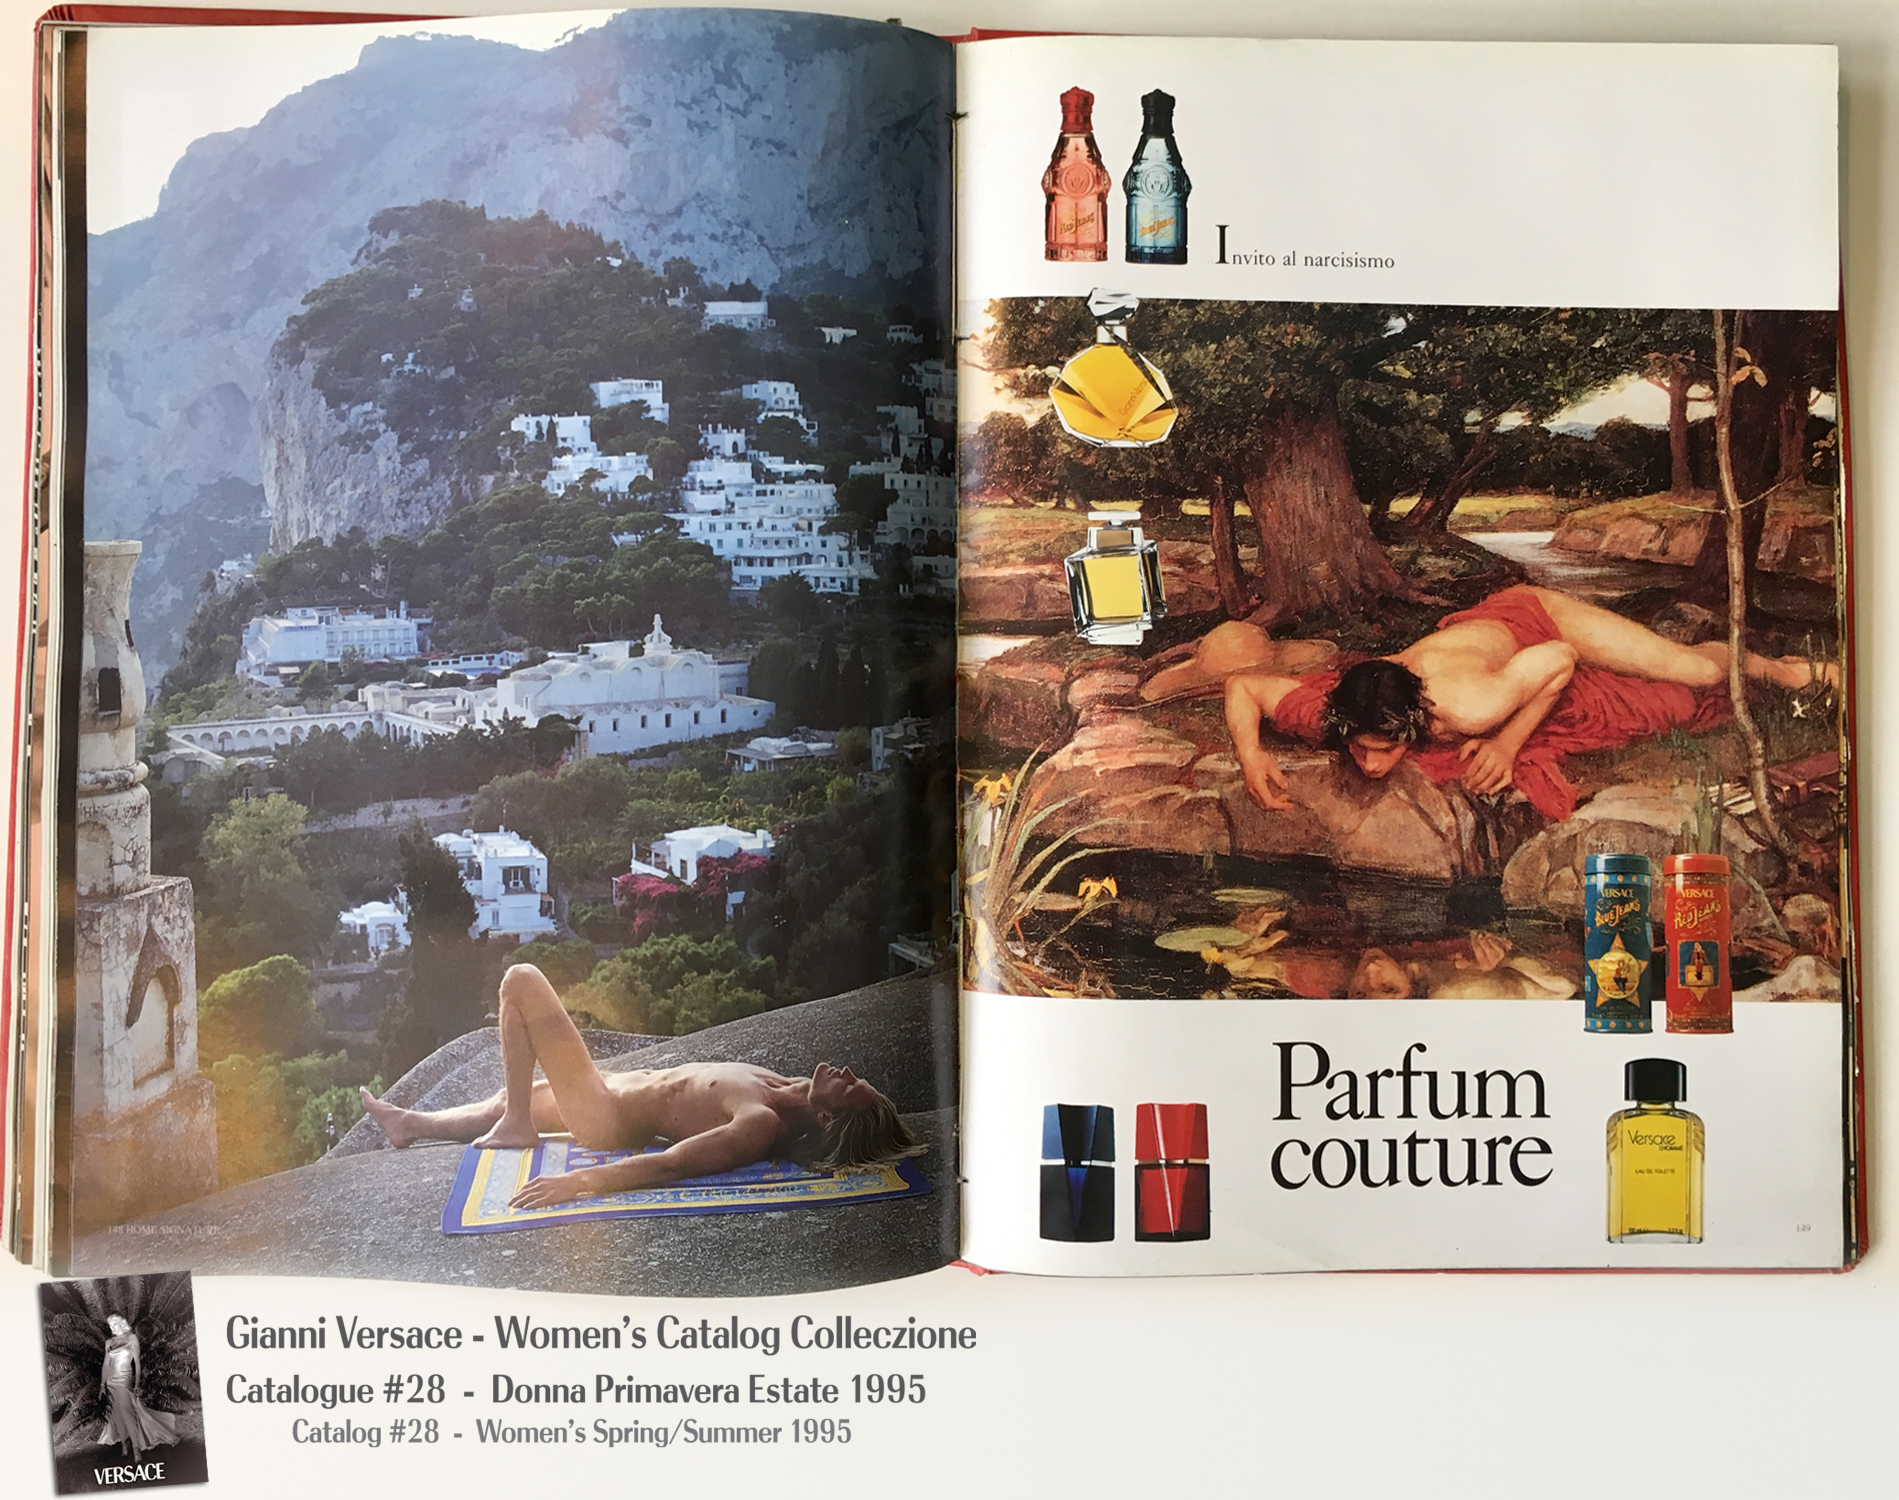 Profumi Perfume Capri Naked Male Model Towel Gianni Versace Donna Collezione Primavera Estate Woman's Spring Summer Madonna Catalog Fashion Supermodels #28, 1995